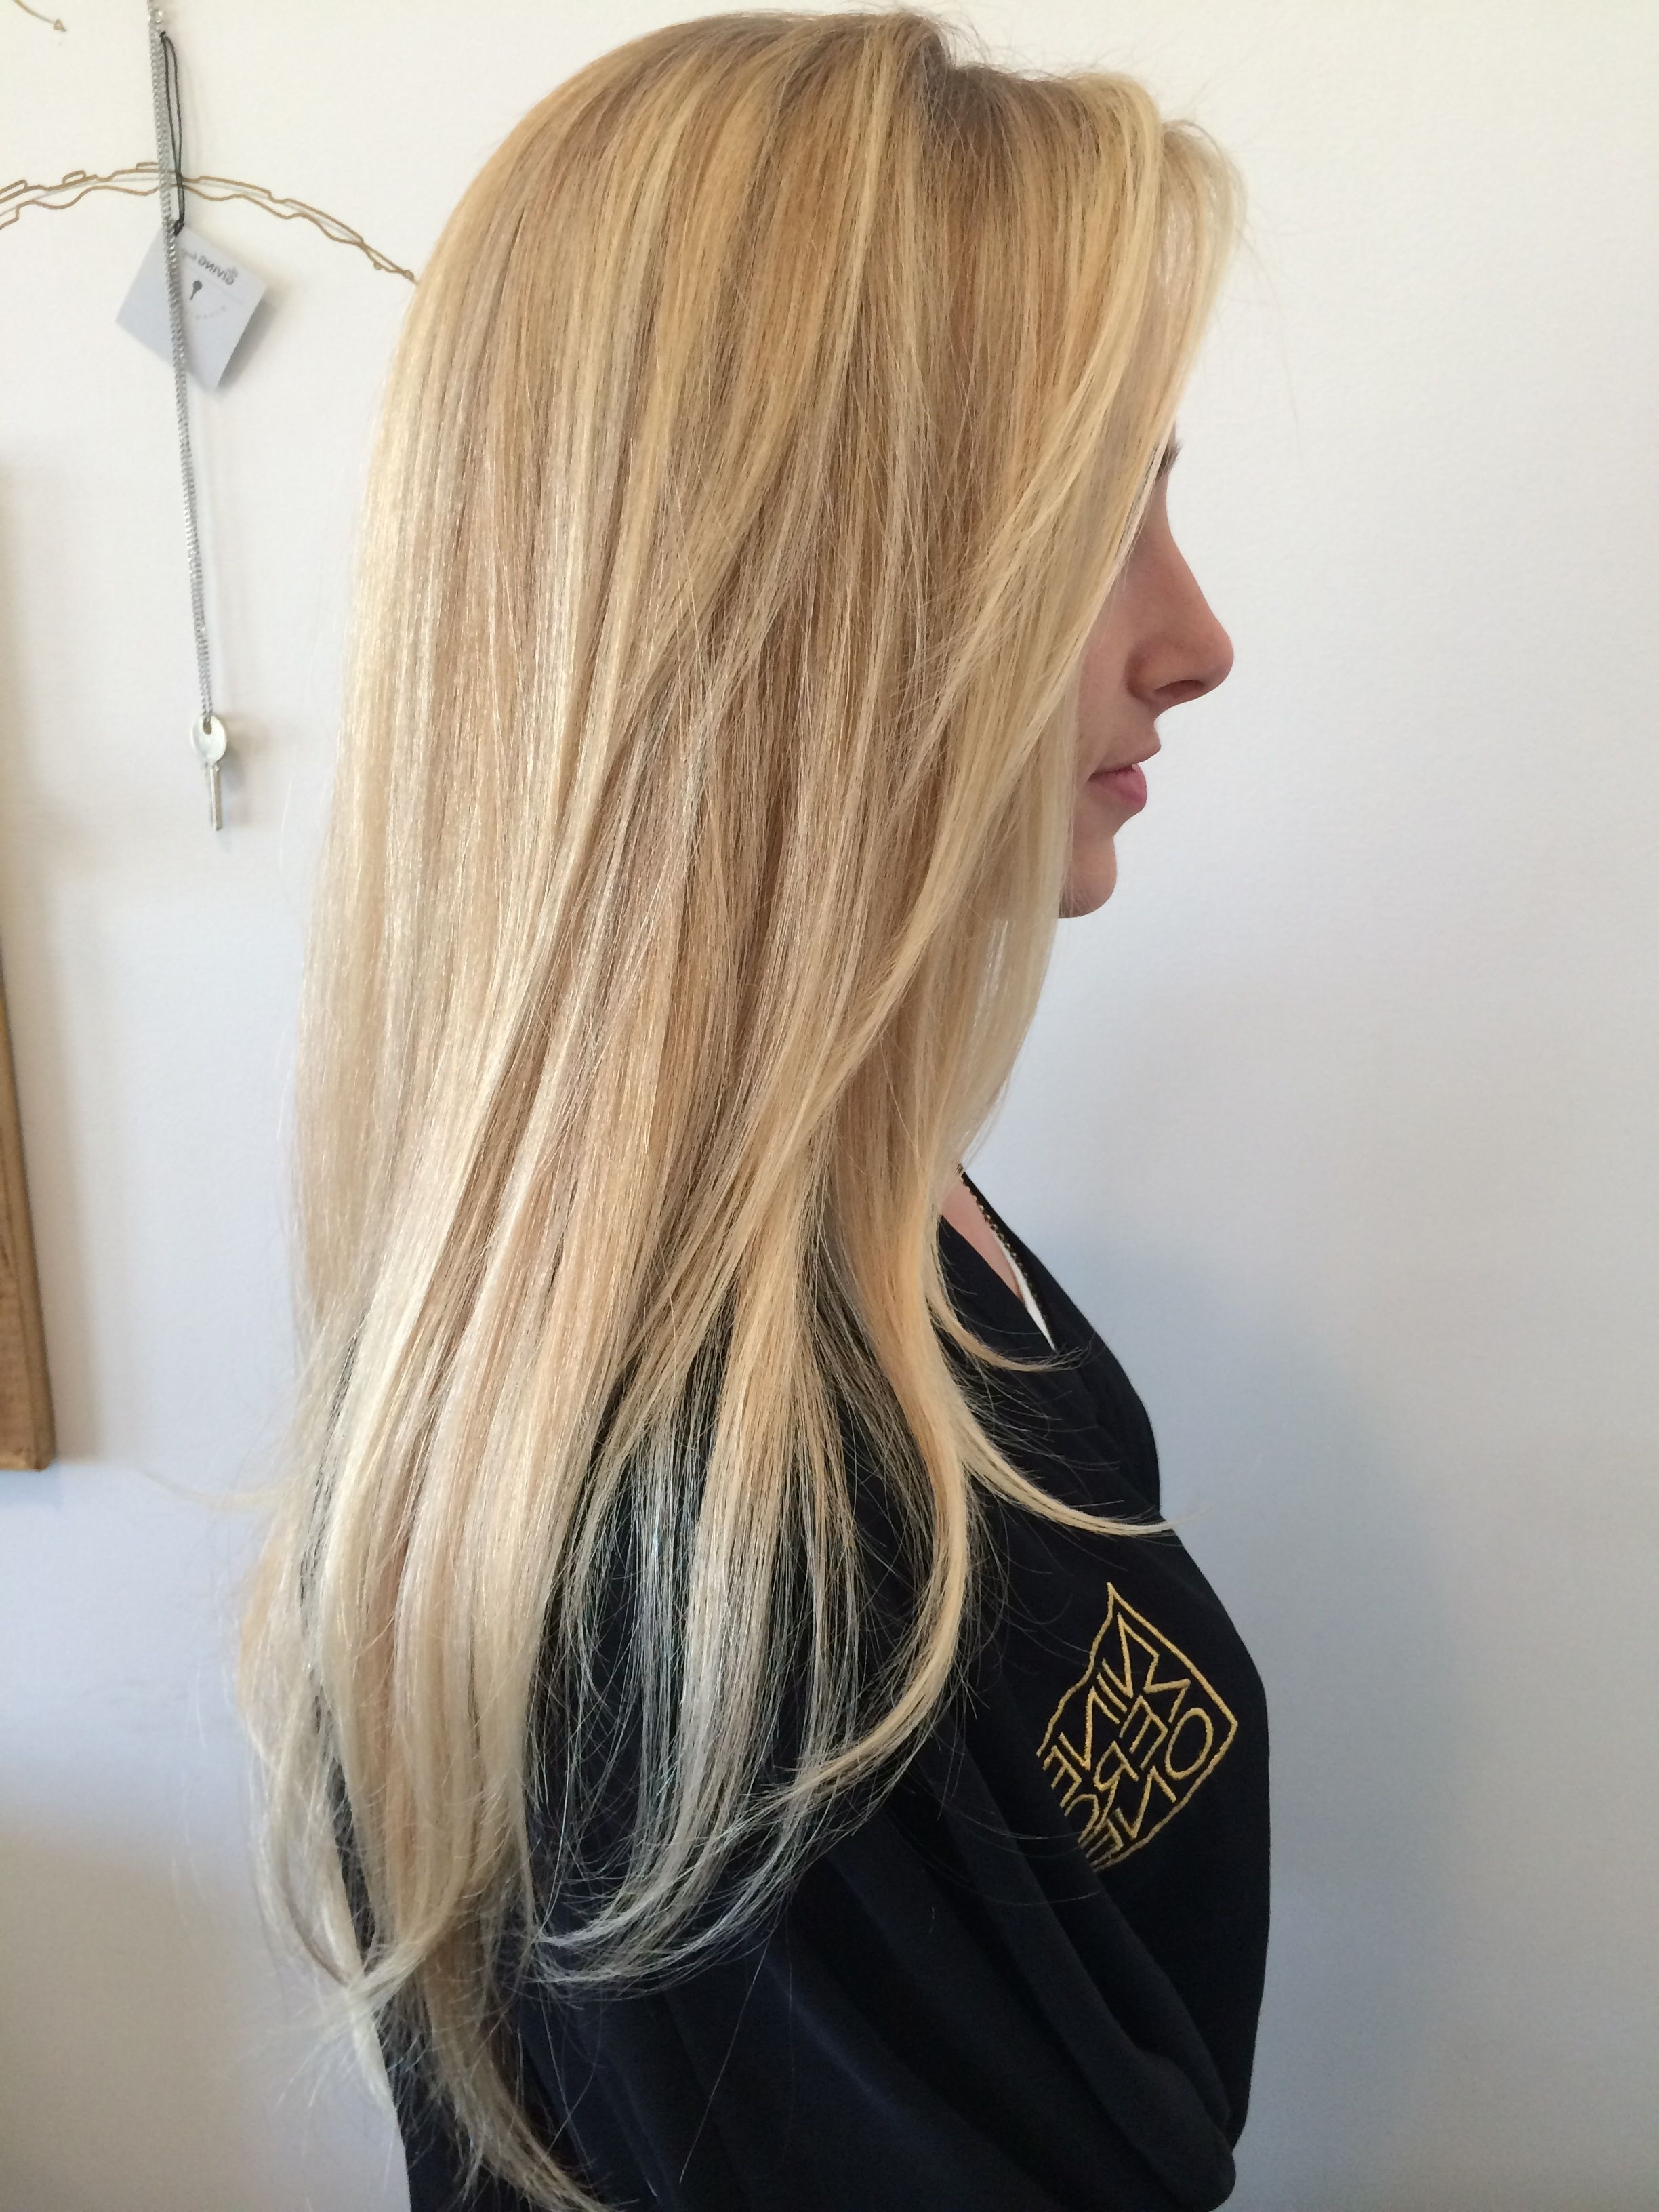 Most Recent Sunkissed Long Locks Blonde Hairstyles Inside Colornicole Leal At Nine Zero One Salon Blonde Hair, Lived In (View 12 of 20)